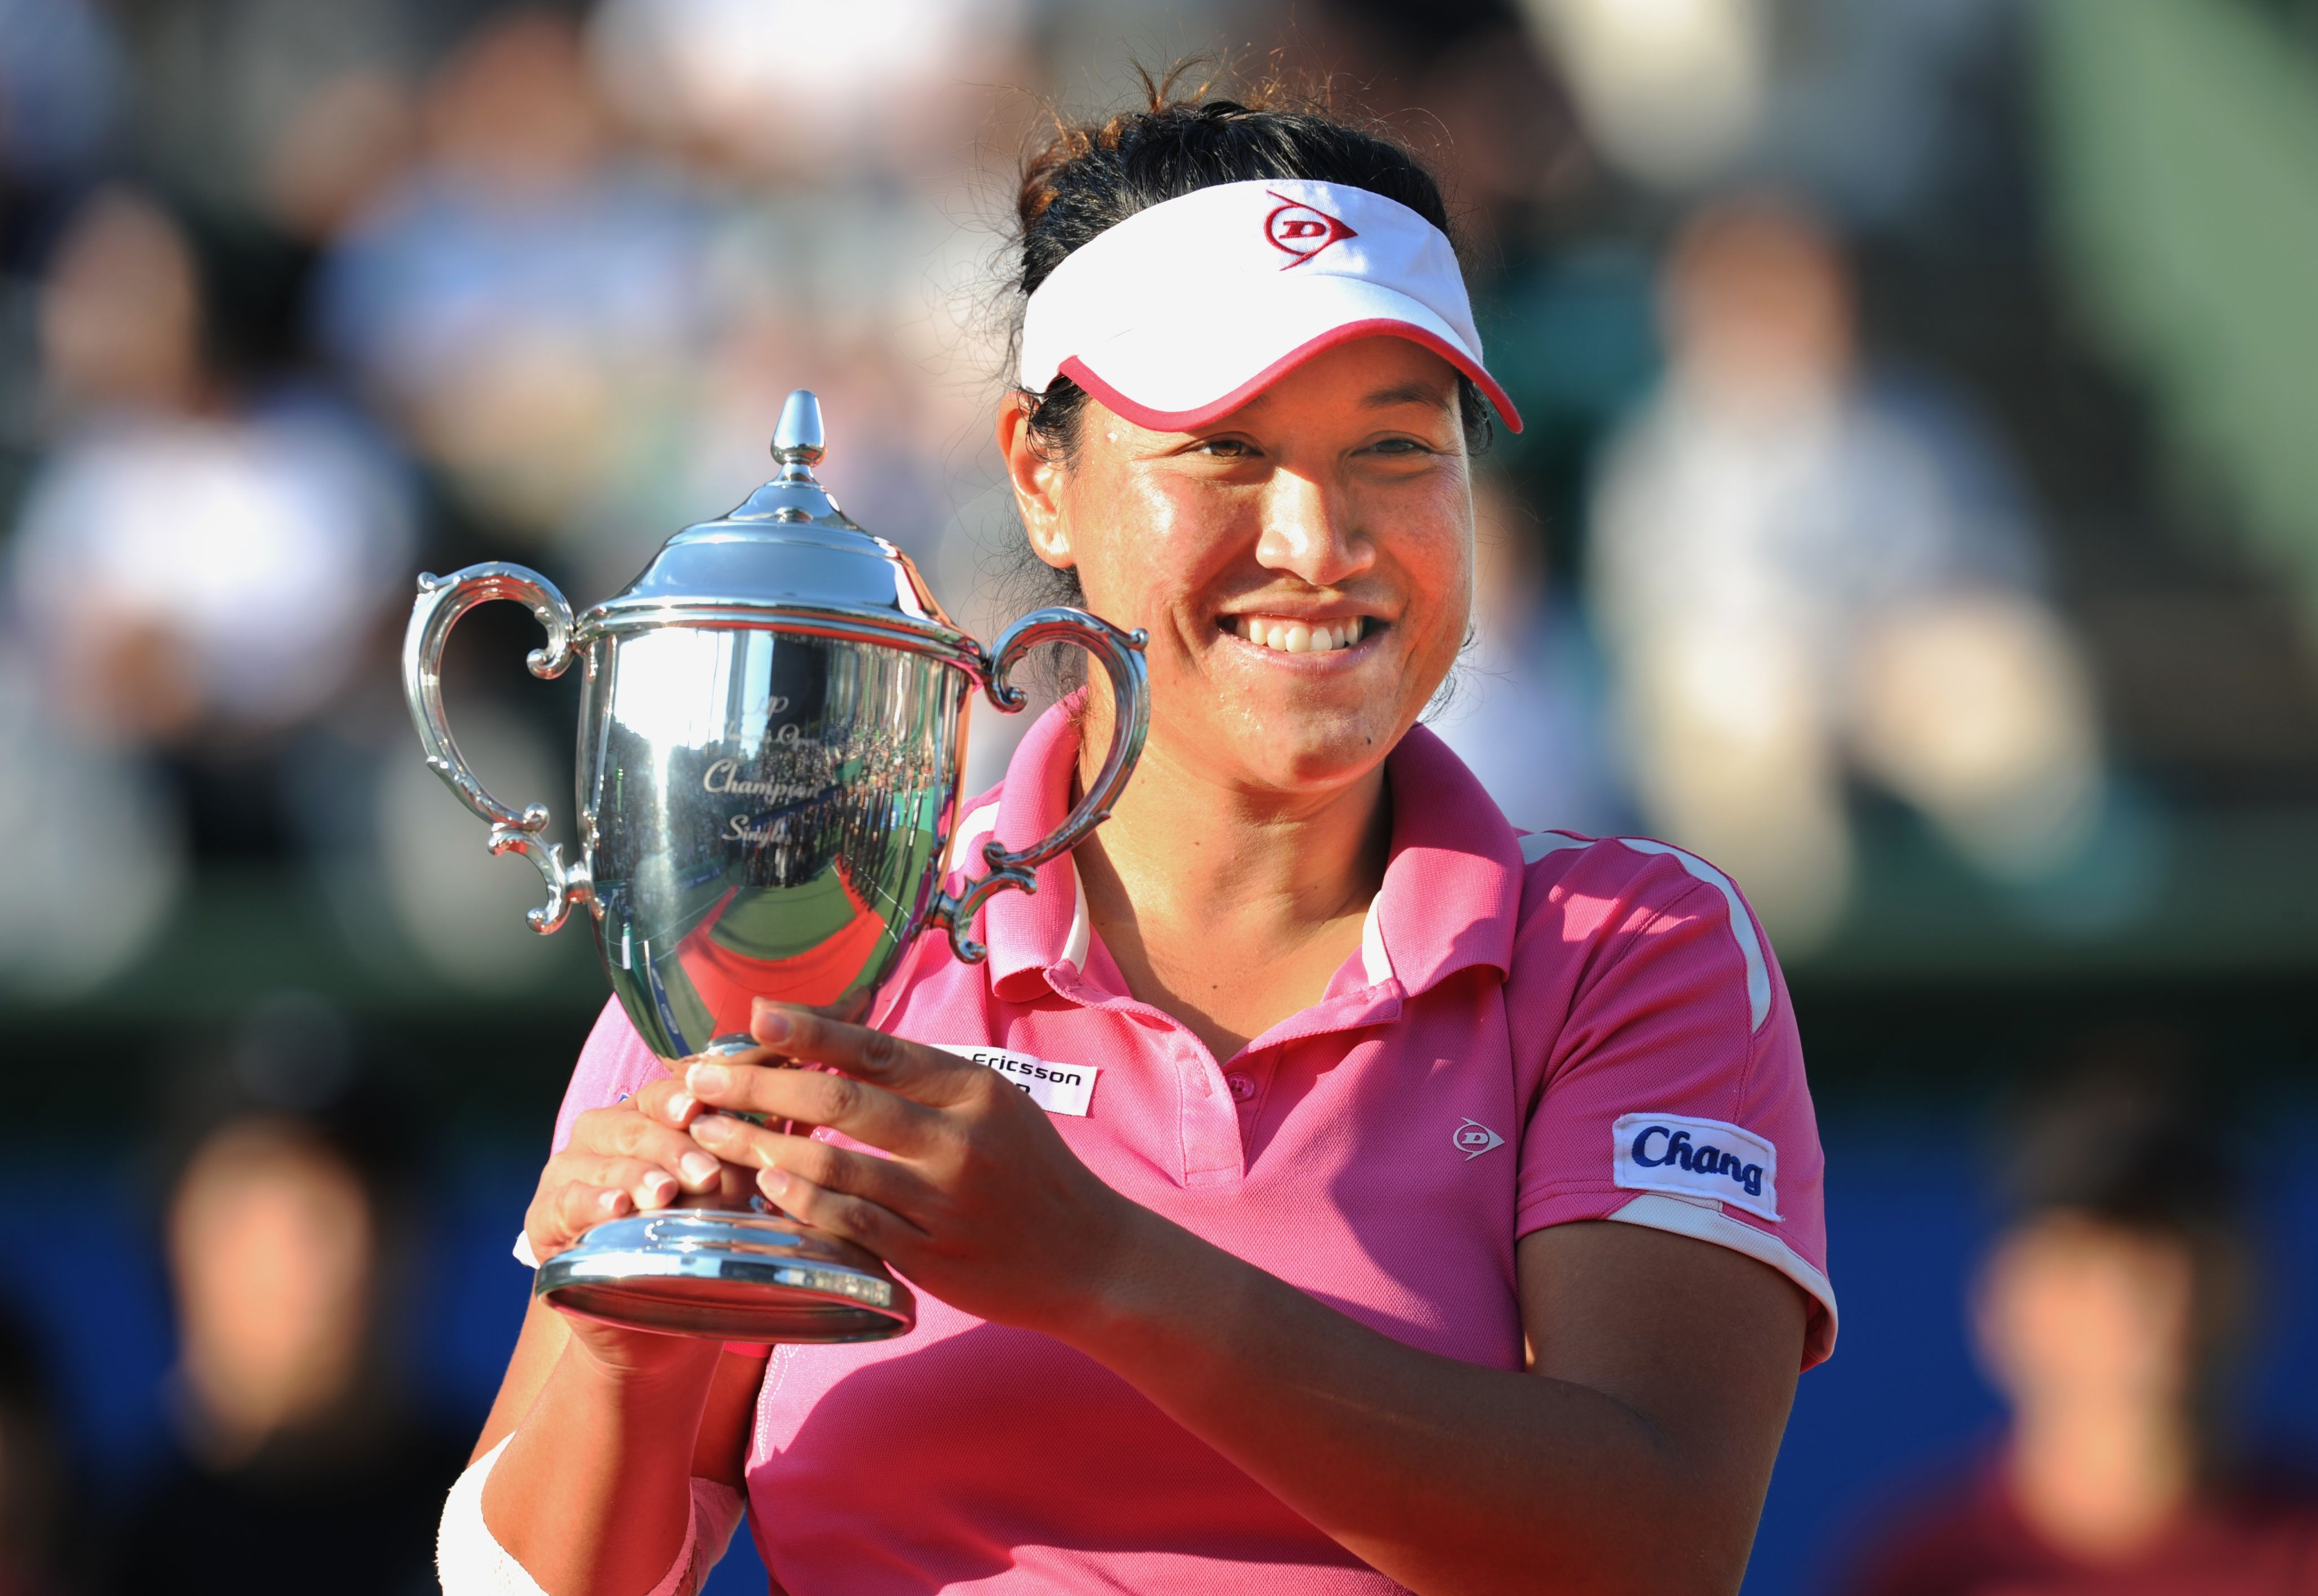 Tamarine Tanasugarn of Thailand holds the champions trophy during an awards ceremony following her women's singles final match against Kimiko Date Krumm of Japan at the Japan Women's Open tennis tournament in Osaka on October 17, 2010. Tanasugarn won the match 7-5, 6-7, 6-1. AFP PHOTO/Kazuhiro NOGI / AFP / KAZUHIRO NOGI